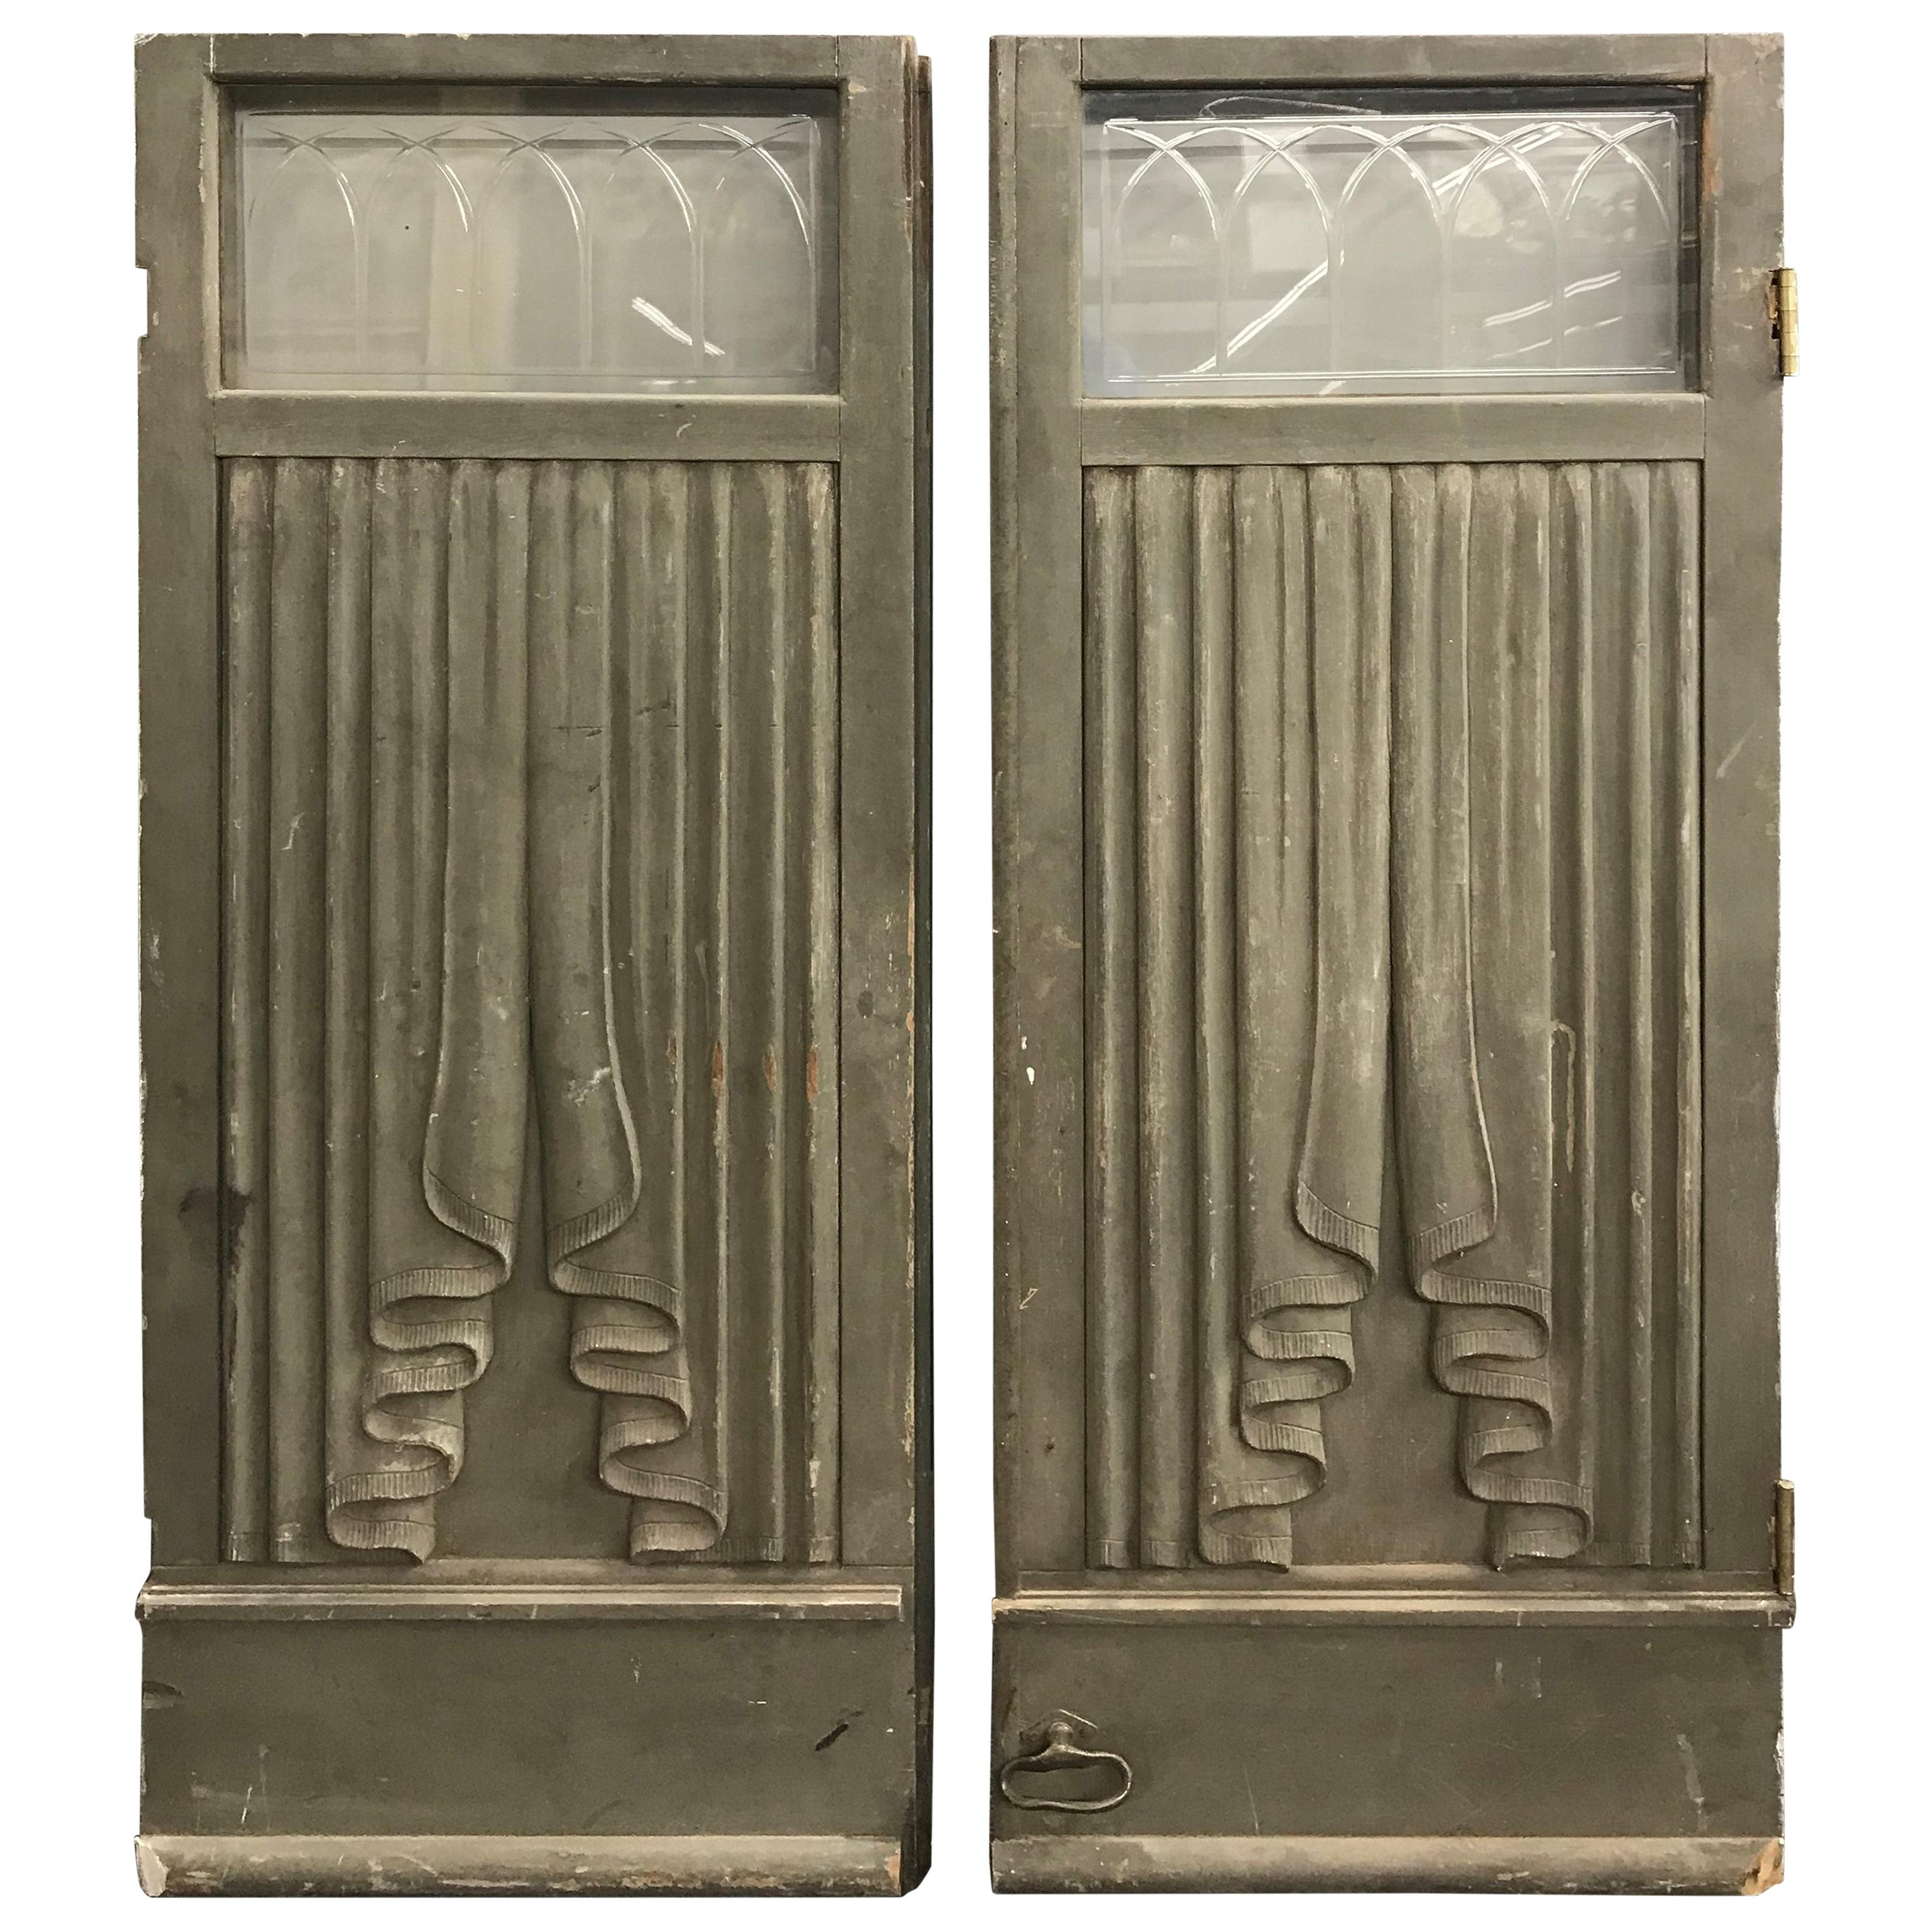 Pair of Victorian Wooden Hearse or Funeral Carriage Doors with Glass Transoms